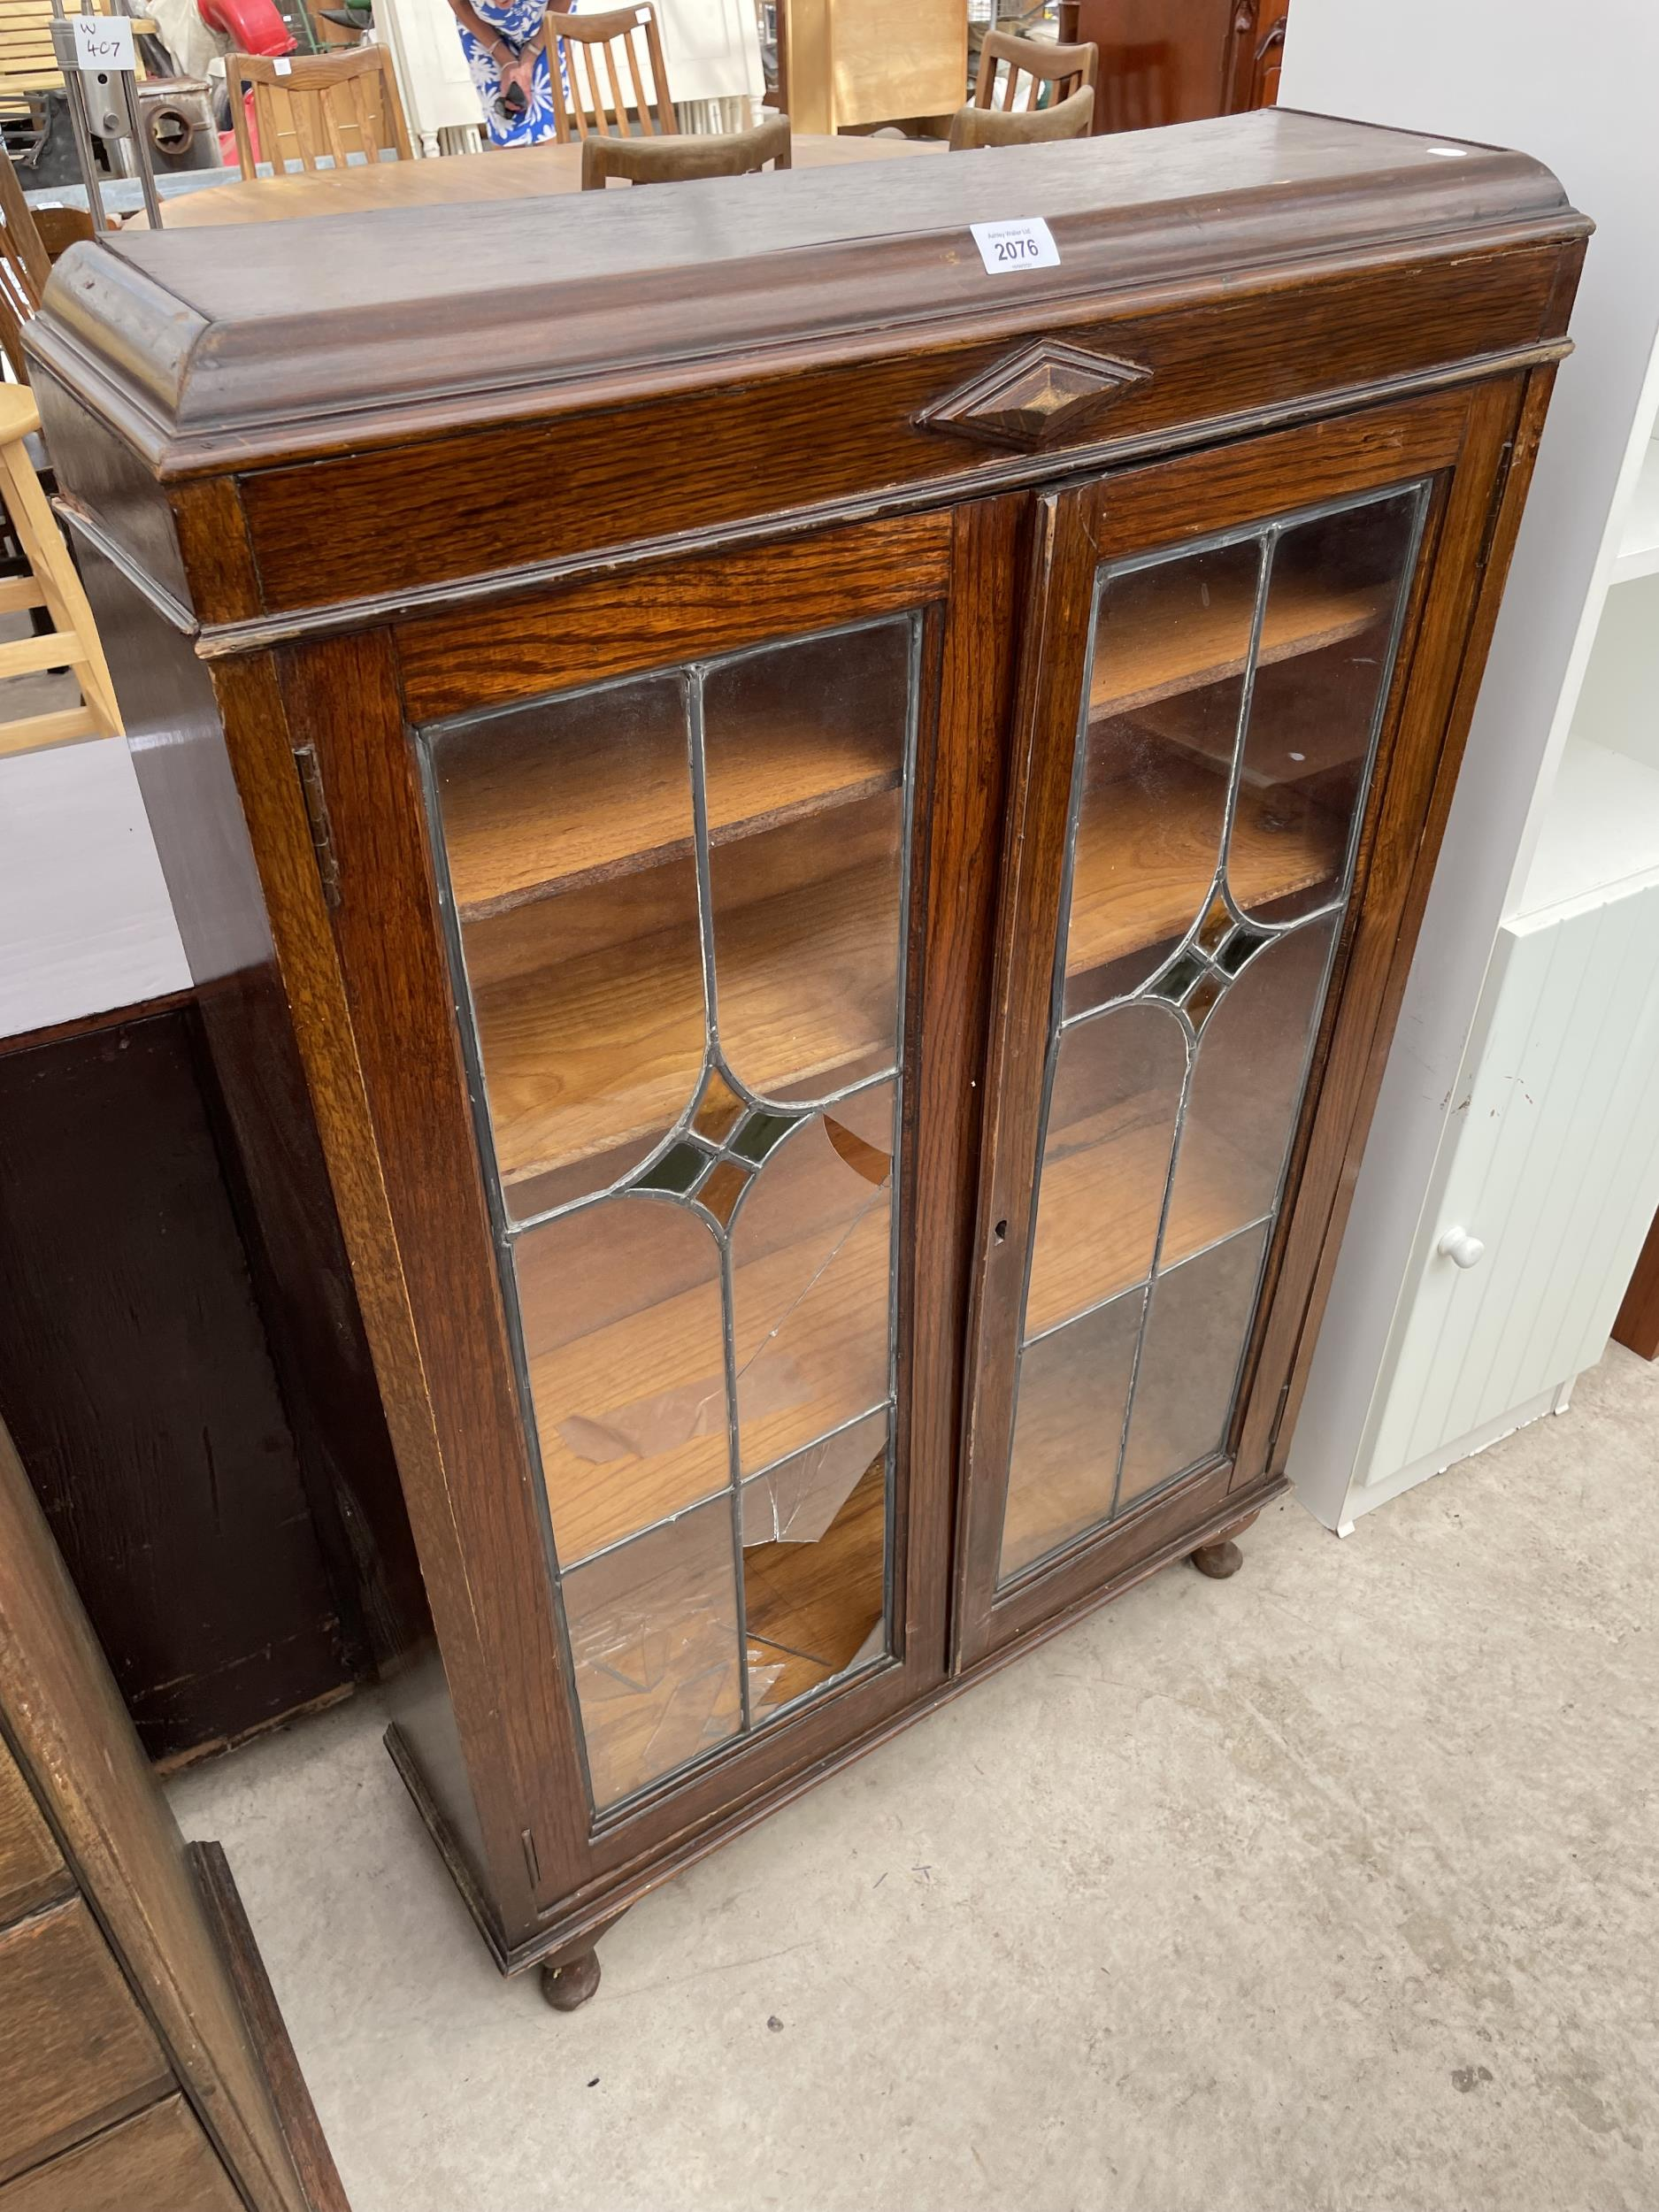 """AN EARLY 20TH CENTURY OAK GLAZED AND LEADED TWO DOOR BOOKCASE, 28.5"""" WIDE ON CABRIOLE LEGS - Image 2 of 6"""